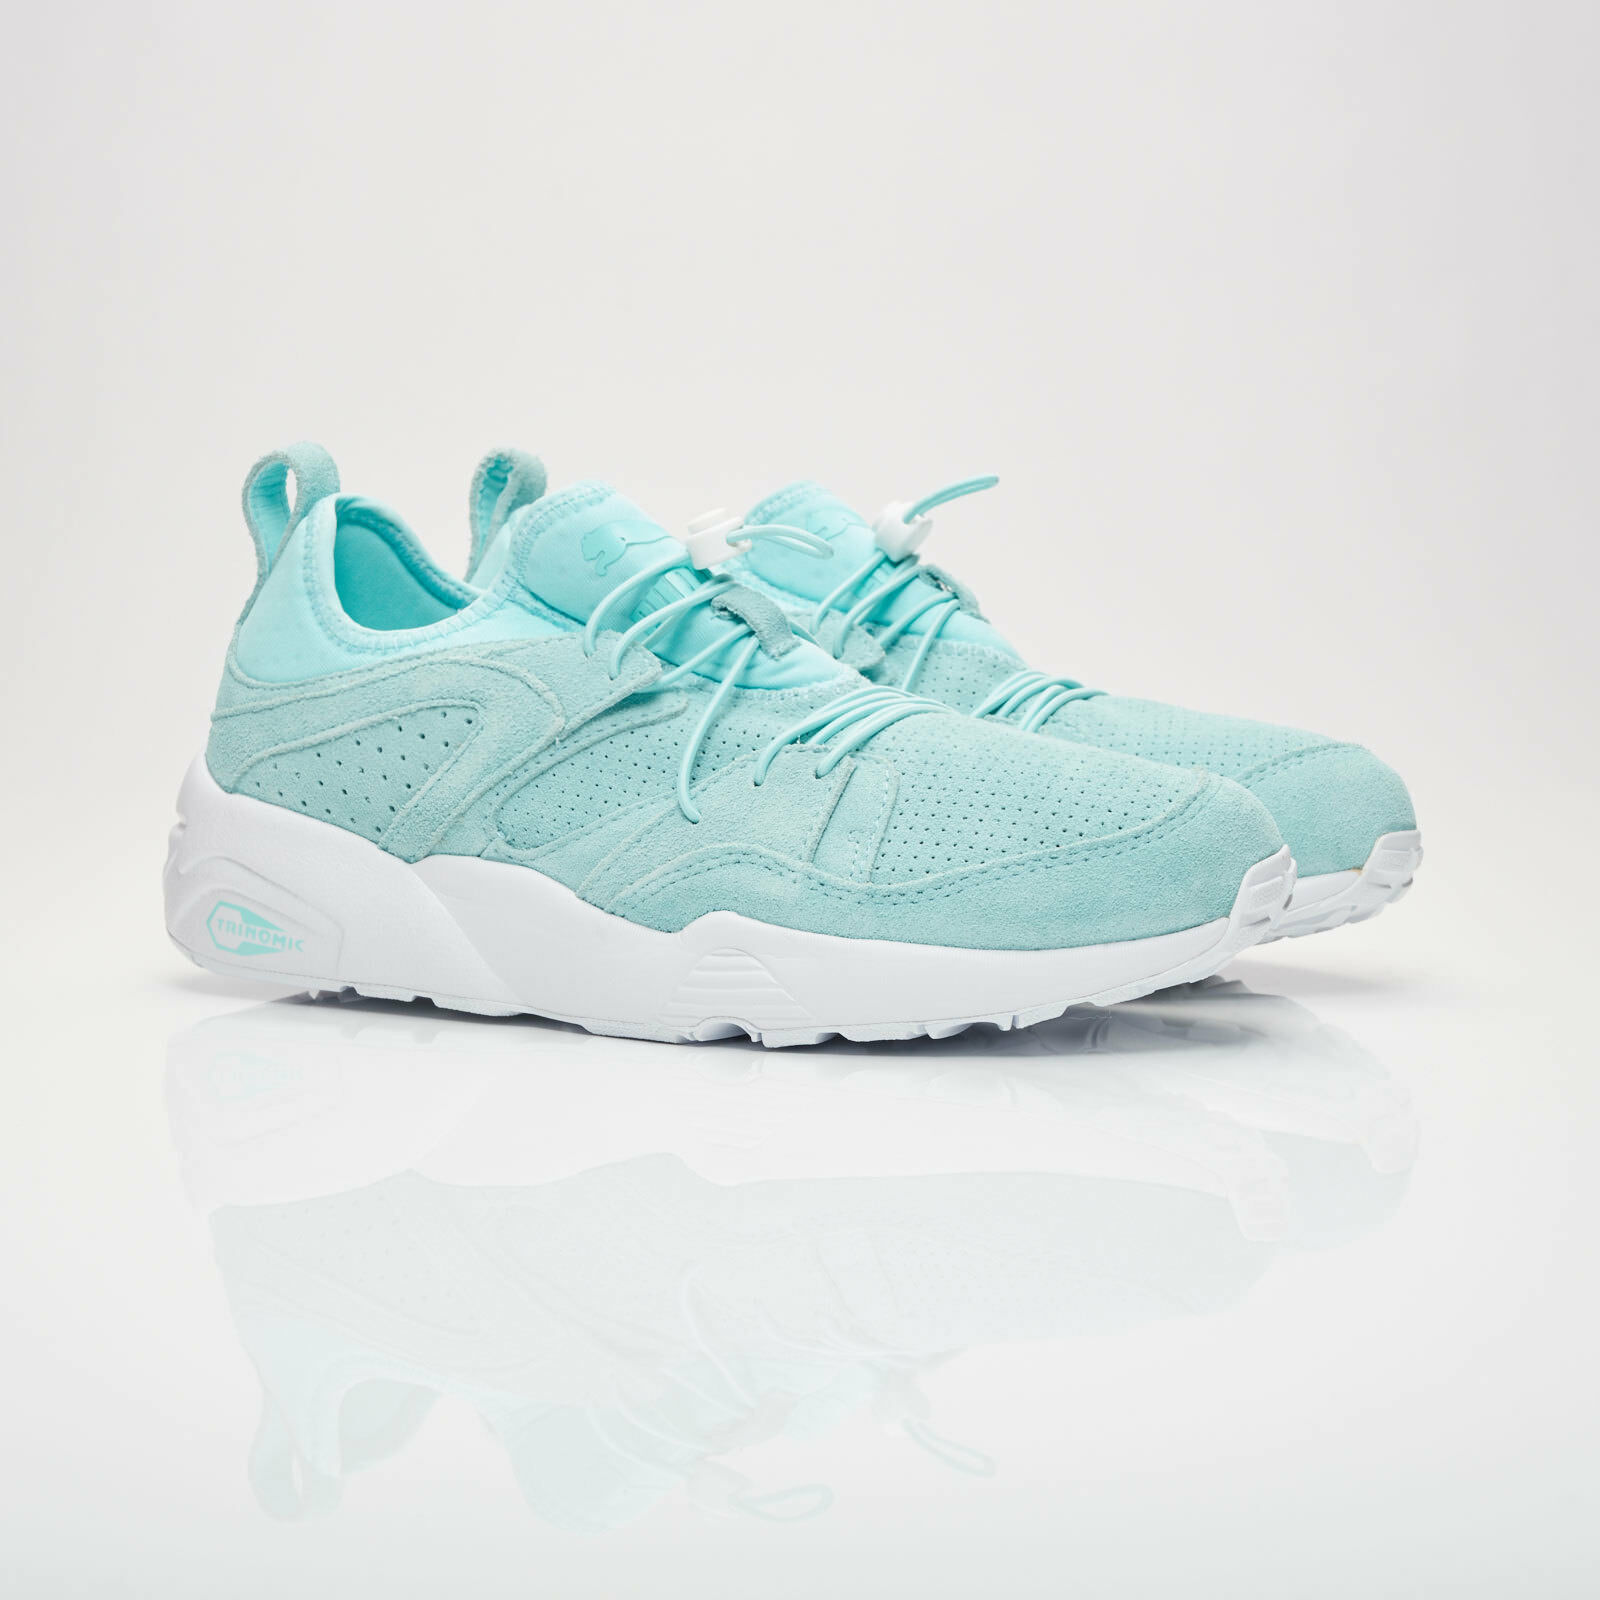 Puma Blaze of Glory Soft homme Trainers chaussures